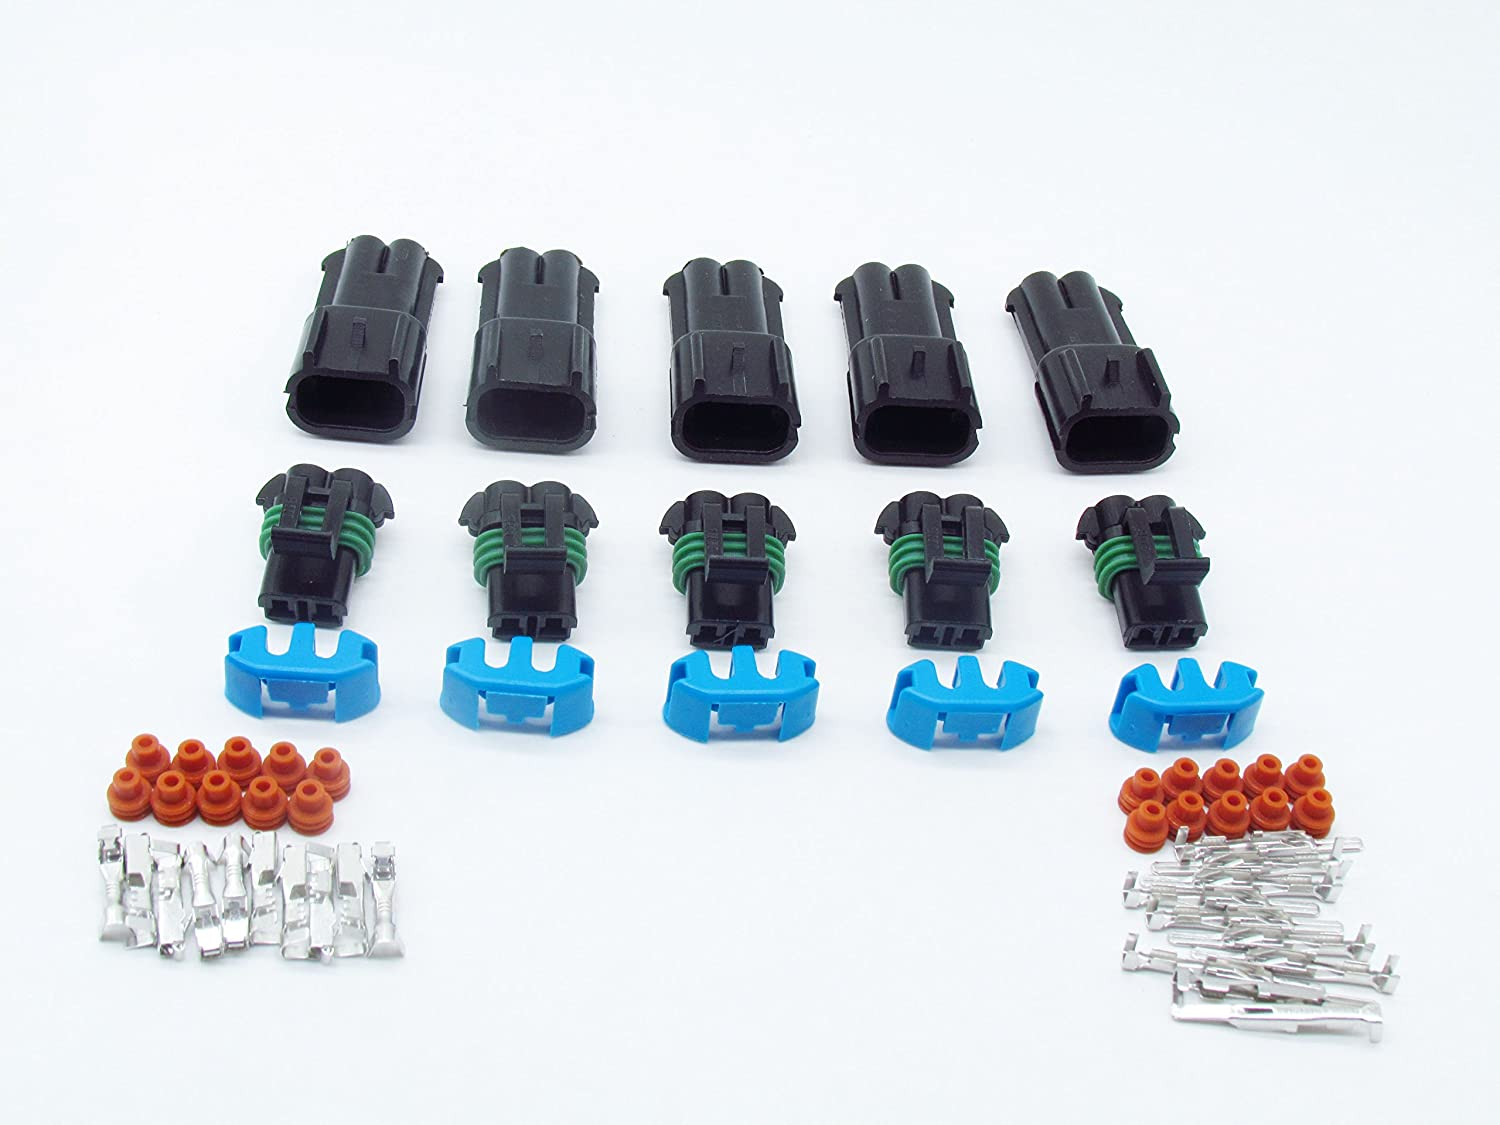 CNKF 5 Sets 2 Way Male female 280 Metri-pack Connector for FORD LINCOLN MERCURY 3U2Z-14S411-GEA 15300002/15300027